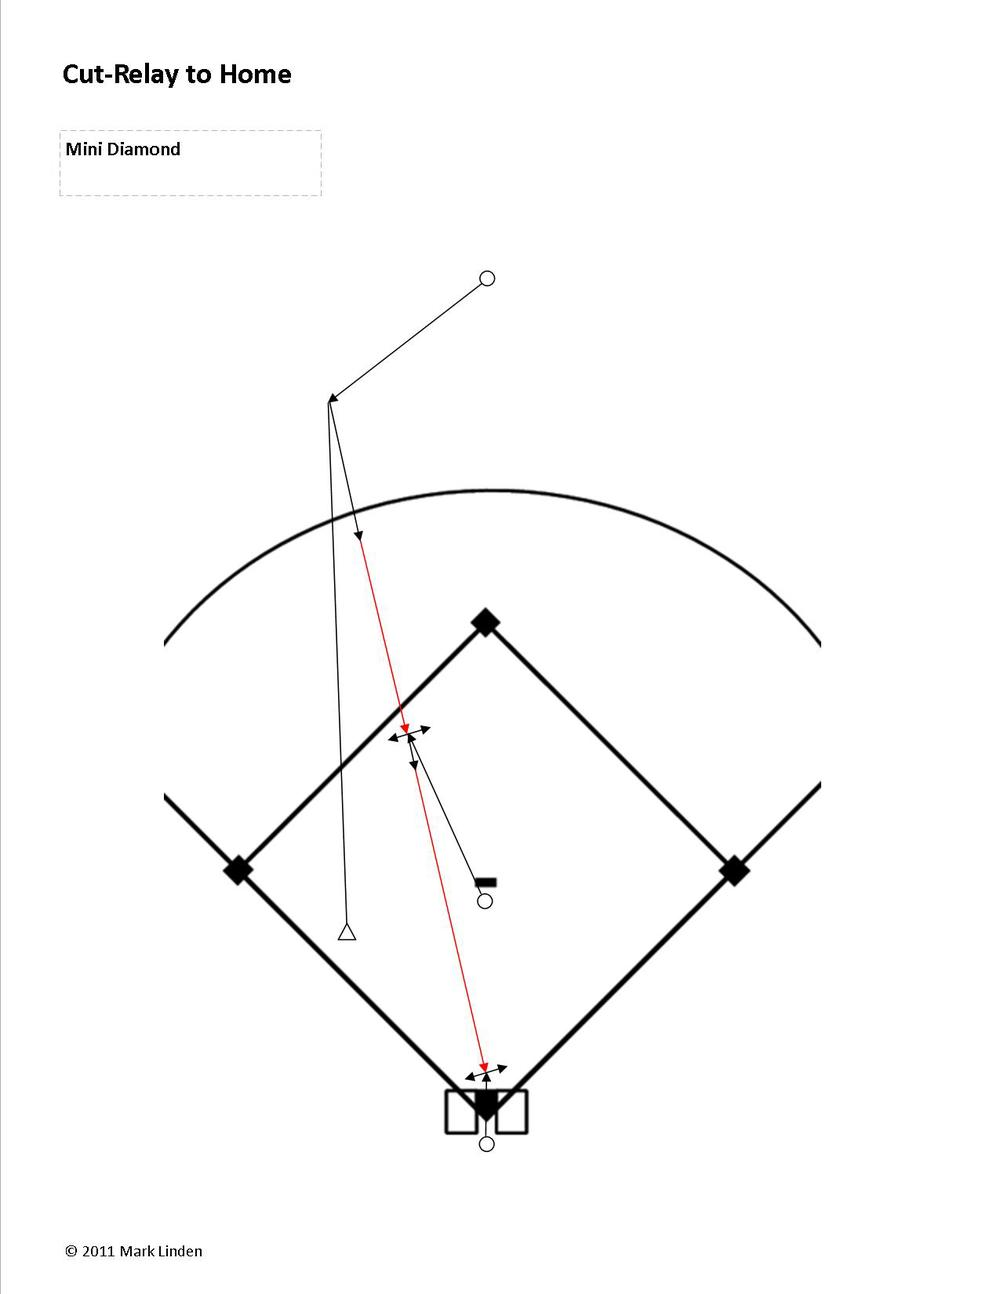 "Coach  rolls a ball to the center fielder. Mix up locations between left-center and right center field, so the pitcher gets the idea that they move to different spots depending on the location of the ball.   Pitcher  has three responsibilities: 1. Line up between the base and the ball*, 2. move out towards the outfielder to a point midway between the ball and home plate, 3. Calls for the ball. Use the term you prefer for the call (anything except ""Cut' ...we don't want the cut-relay player using the word, ""Cut"" because the catcher uses that term.  We don't want two players using the same term to make a call).  I like either ""Hit me"" or ""Ball, ball, ball""  When receiving and throwing the ball the Pitcher first gets to the proper spot on the field to catch the ball and gets in a ""Ready Position"".  They ""Move Their Feet to Catch"", ""Turn Glove Side"", then ""Moves Their Feet to Throw"".  After throwing the ball the pitcher follows their throw in a straight line towards their target - ""Follow Your Head""  *The key to getting lined up is for the pitcher to 'look both ways' (same as they would do before crossing a street).  Look to the ball, back to the plate, look to the ball, then back to the plate…  this exercise enables the pitcher to identify the 'line' between the ball and home plate.  They want to get on this line as quickly as possible.   Note:  young players are resistant to looking away from the ball.  It will take them a few days of working in this drill before they start making it a habit of looking both way.  Remember, we are asking the pitcher to do a lot of stuff in a short period of time in this defensive situation.  Their young brains will require some time to get this…be patient as a coach.  The WILL get it after a while.   Catcher  moves out to their 'position' a foot in front of home plate.   As the ball is on its way from the center fielder to the pitcher the catcher hollers, ""Cut Four"".  After catching the ball the catcher puts a tag down on the ground where the base runner will be sliding into home plate, then makes a shuffle step out towards the middle of the infield, in a power position, to ""Look for other runners"".   Outfielder  fields the ball and waits for the pitcher to 'call for the ball' (In this drill the outfielder will often get to the ball before the pitcher gets into position. In a game the pitcher will get into position on time.  In a game we rarely want to delay getting the ball in).   Note 1:  Because the players are fairly close to each other in this drill, we have them use an underhand toss to transport the ball.   Note 2:  On a full sized field the Shortstop would move out towards the center fielder and the second baseman would cover second base.  If the ball is way over to the right field side of right-center field the second baseman goes out and the shortstop covers second base.  There is not set rule as to when these responsibilities change.  Over time the players will develop and instinct for this (in reality this is an instinct the players develop at an older age).  Note 3: The shortstop and second baseman  ARE NOT  the cut-relay player on balls hit in front of the outfielders.  A common mistake in 12U baseball and softball is the outfielder making a short throw to the shortstop or second baseman (thinking that is the cut-relay player).  The infielder is then left to make a very long throw to the catcher.  The shortstop and second baseman get the ball from the center fielder in one of the following two situations:  1 - The base runner(s) stop trying to advance to the next base and/or the runner going home is going to score easily.  In this case it becomes a 'get the ball back in to the infield play'.  The outfielder hands the ball to the infielder or gets it to them using and underhand toss.  The infielder then runs the ball in to the pitcher.  2 - The ball gets past the outfielder at which point the infielder becomes the lead cut-relay player.  They want to position themselves 50'-70' from the ball (depending on the throwing ability of the outfielder).  The pitcher does not go out further than the baseline.  If the ball is in straight away center field the pitcher does not go further out than midway between the pitching rubber and second base.  The pitcher is now the second cut-relay player)         Normal   0           false   false   false     EN-US   X-NONE   X-NONE                                                                                                                                                                                                                                                                                                                                                                           /* Style Definitions */  table.MsoNormalTable 	{mso-style-name:""Table Normal""; 	mso-tstyle-rowband-size:0; 	mso-tstyle-colband-size:0; 	mso-style-noshow:yes; 	mso-style-priority:99; 	mso-style-parent:""""; 	mso-padding-alt:0in 5.4pt 0in 5.4pt; 	mso-para-margin-top:0in; 	mso-para-margin-right:0in; 	mso-para-margin-bottom:10.0pt; 	mso-para-margin-left:0in; 	line-height:115%; 	mso-pagination:widow-orphan; 	font-size:11.0pt; 	font-family:""Calibri"",""sans-serif""; 	mso-ascii-font-family:Calibri; 	mso-ascii-theme-font:minor-latin; 	mso-hansi-font-family:Calibri; 	mso-hansi-theme-font:minor-latin;}"